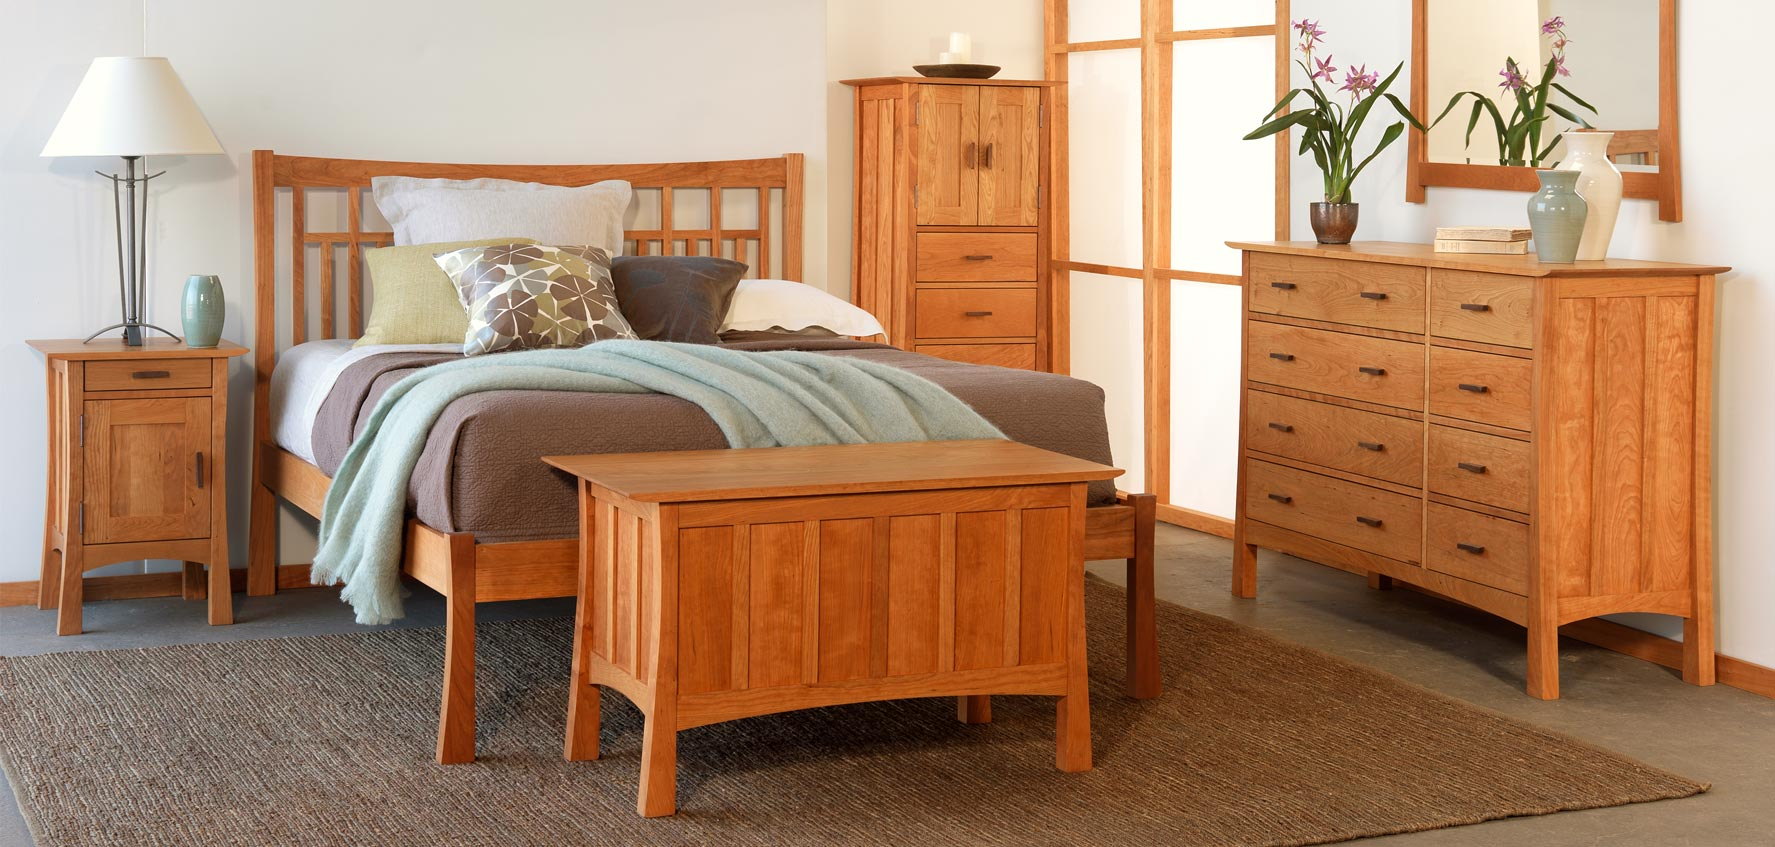 mission style bedroom furniture contemporary craftsman furniture ncksvpx